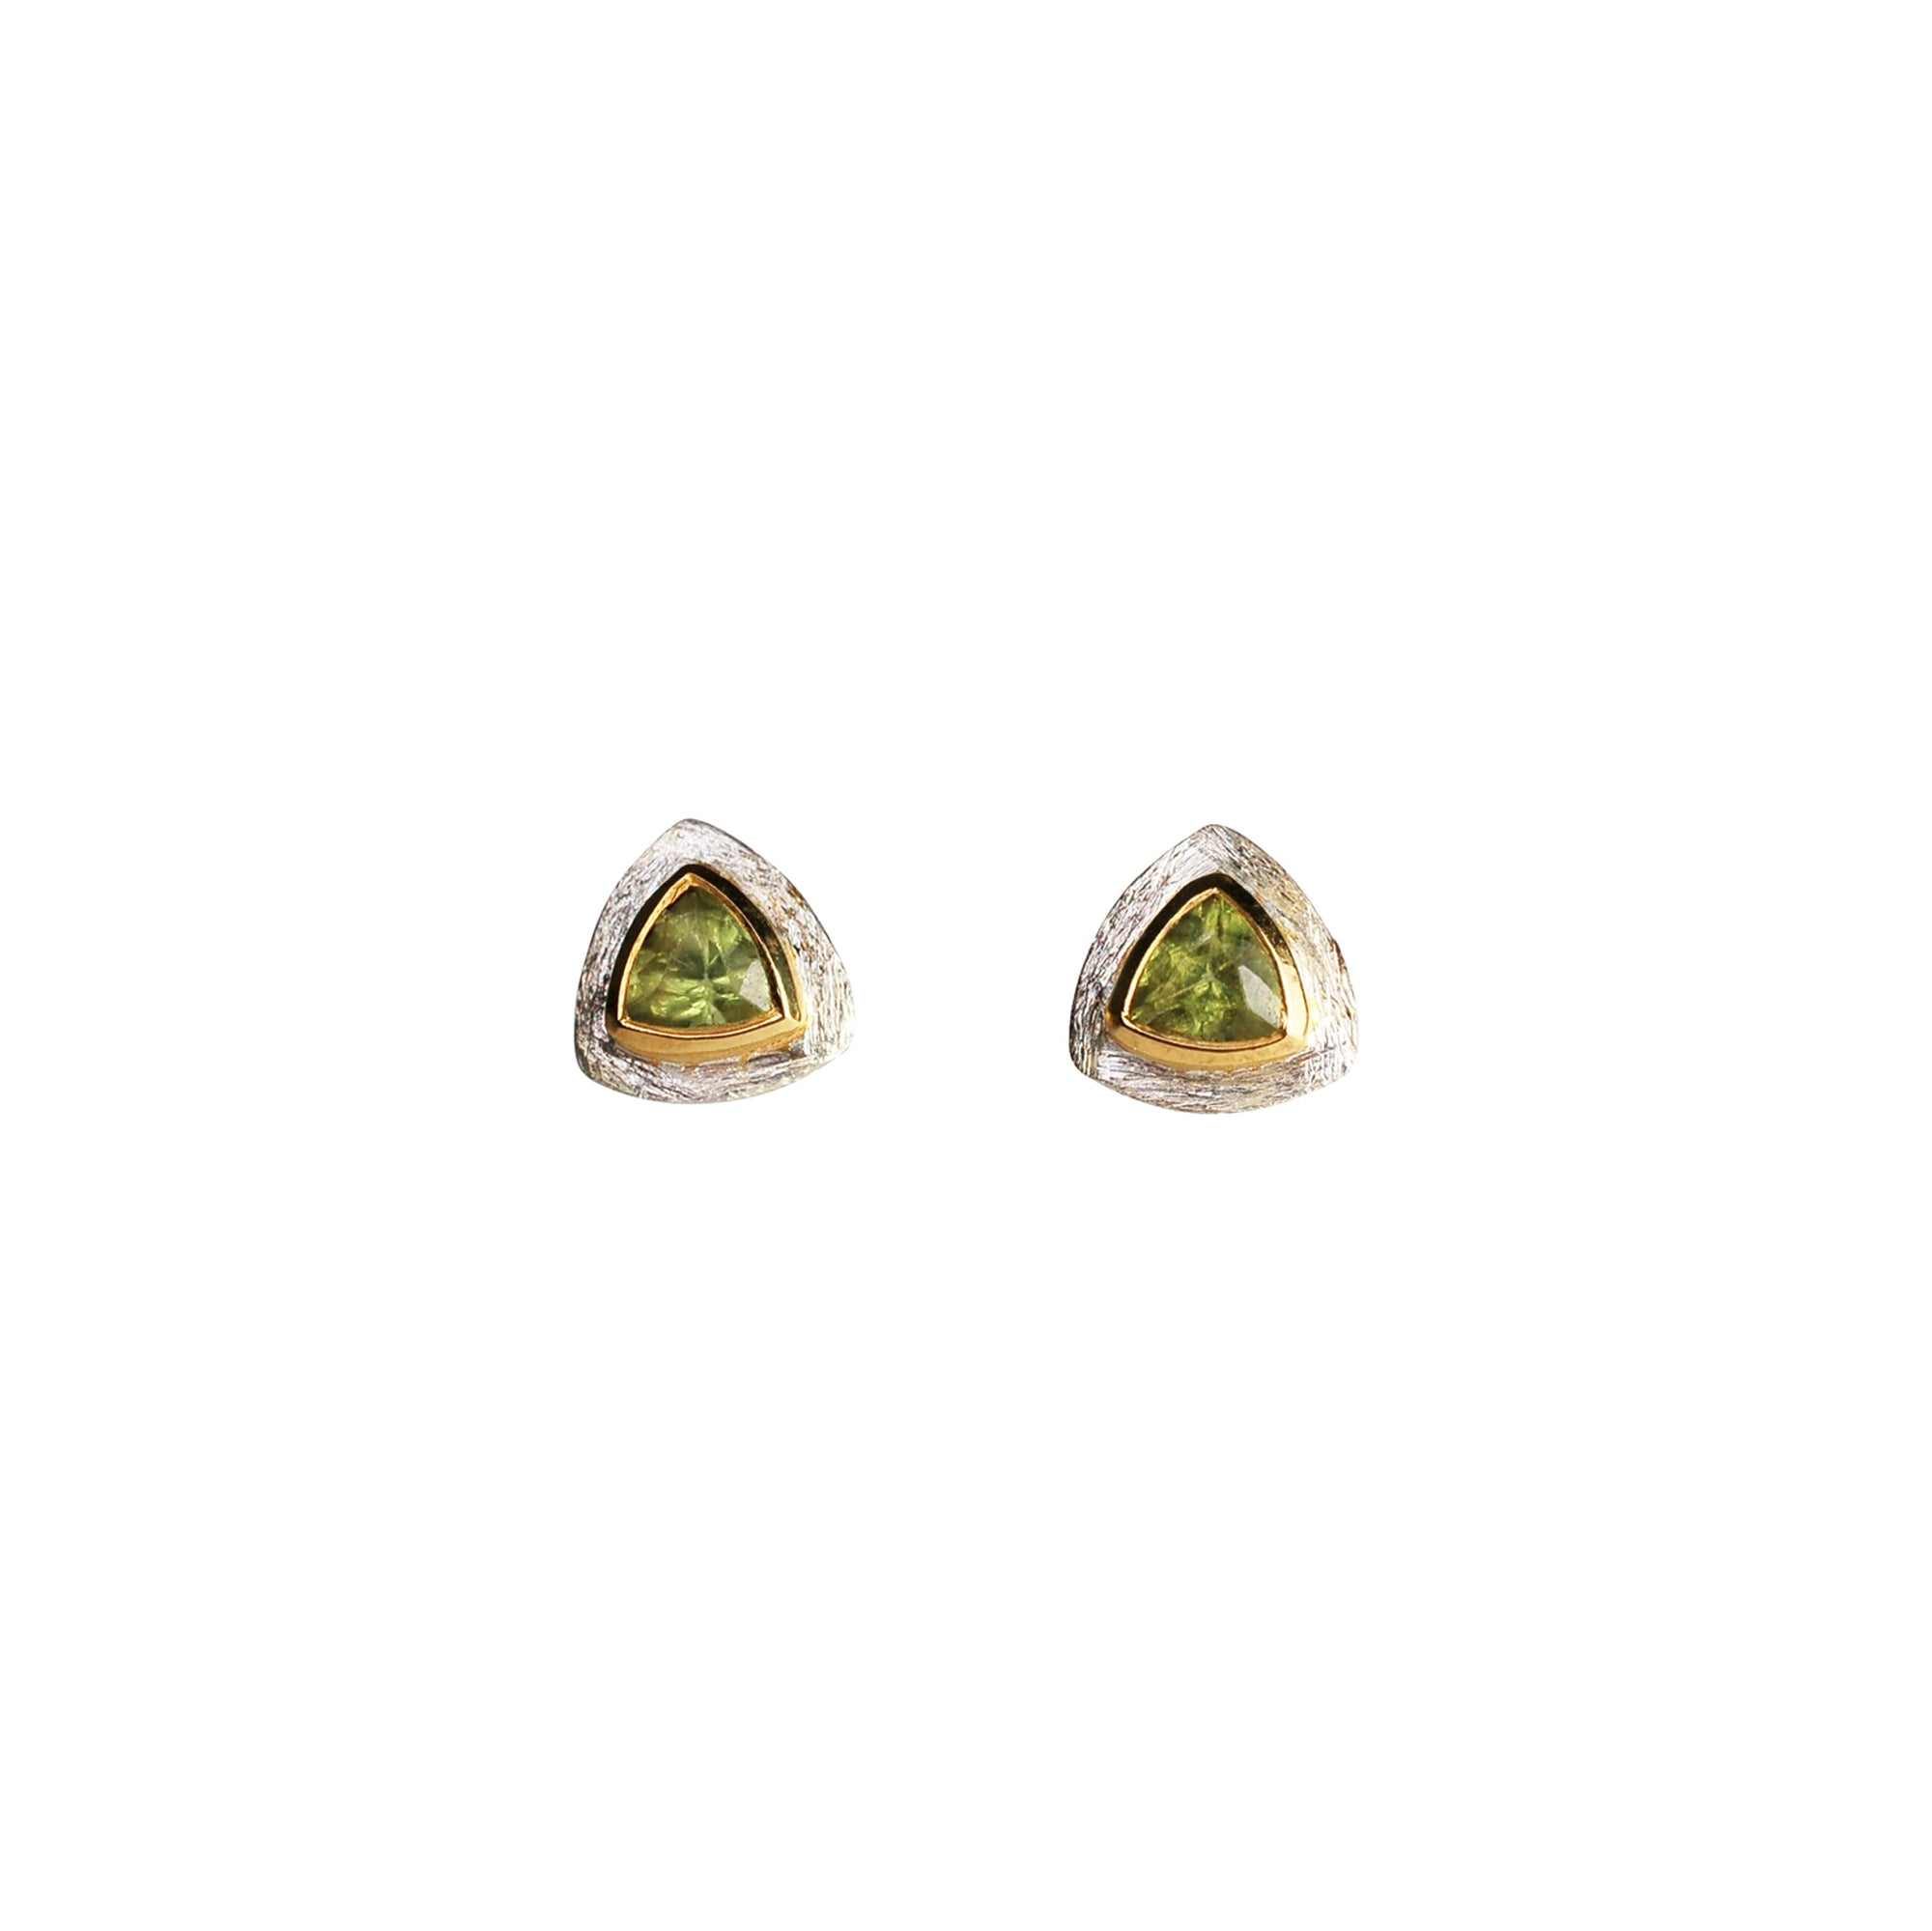 catherine in earrings peridot images stud grande green apple products sterling studs silver of product